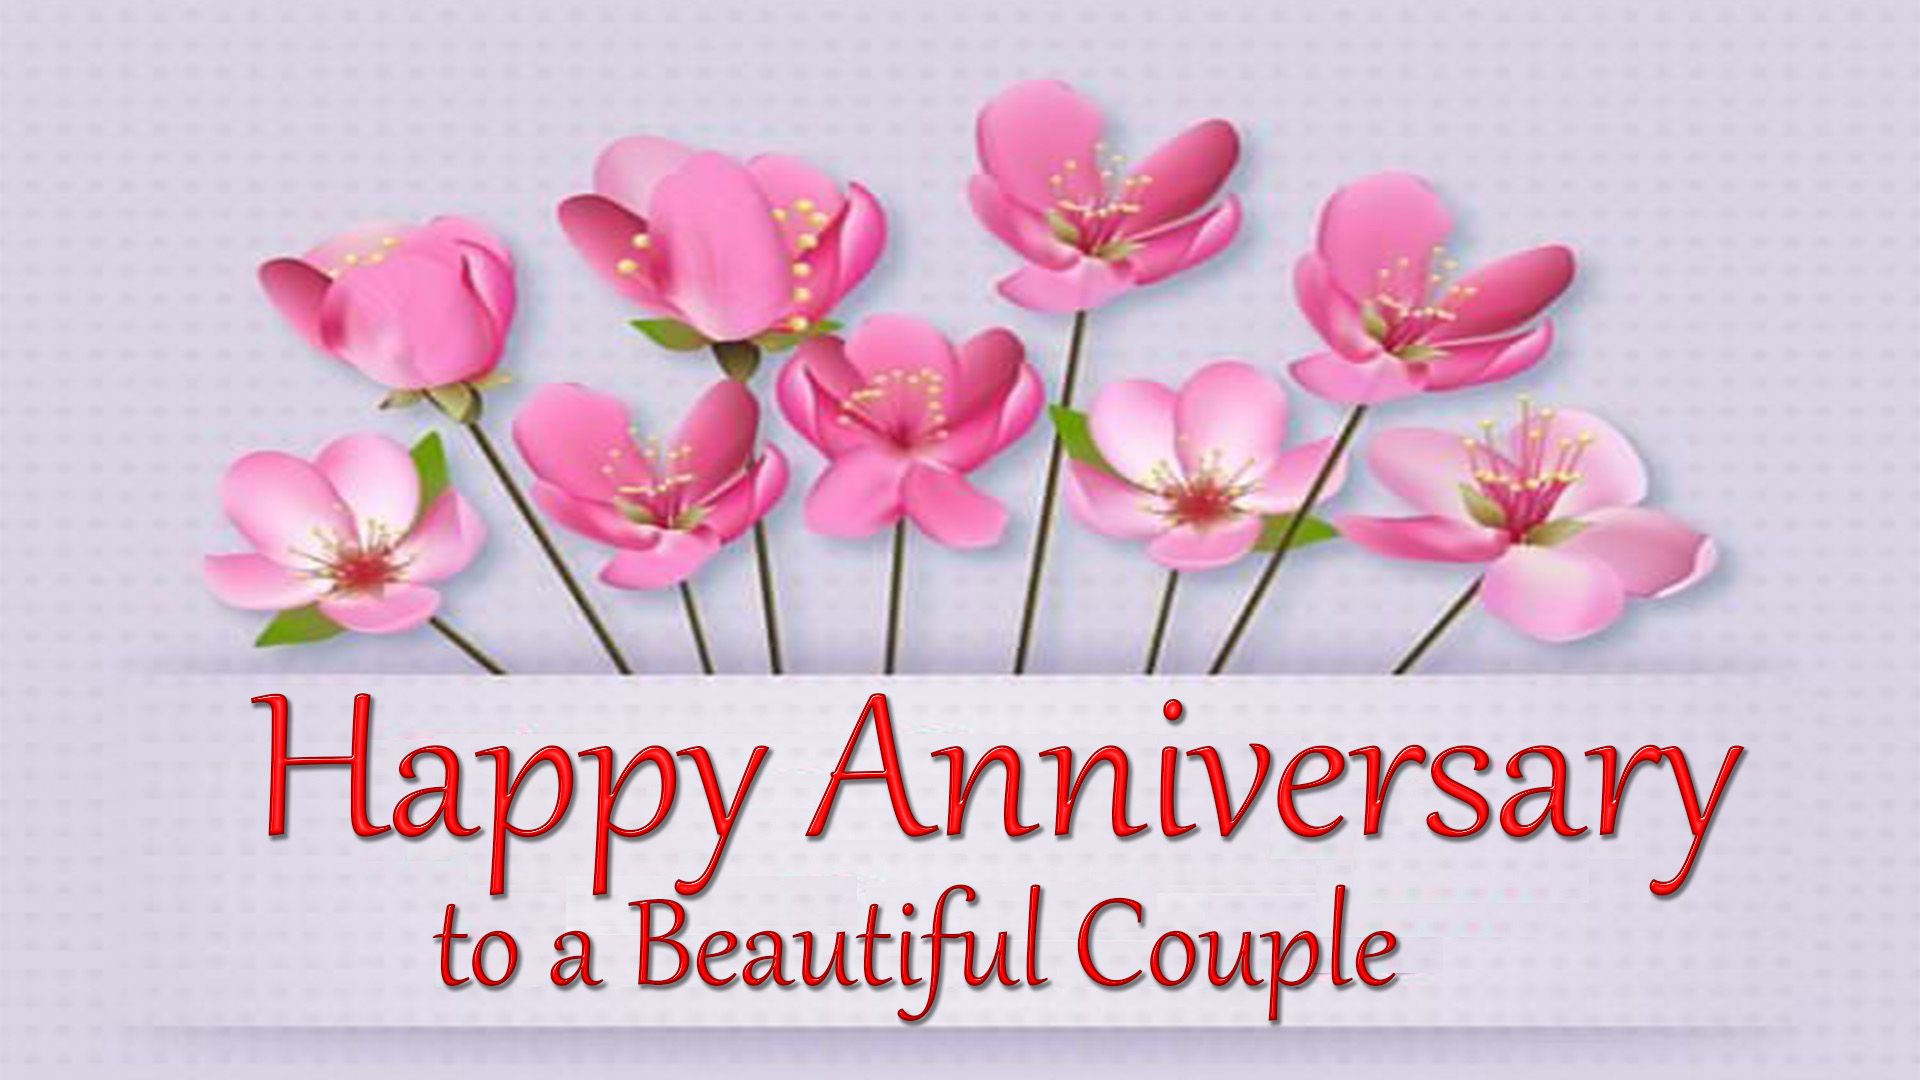 Happy Anniversary Wishes For a Couple Marriage